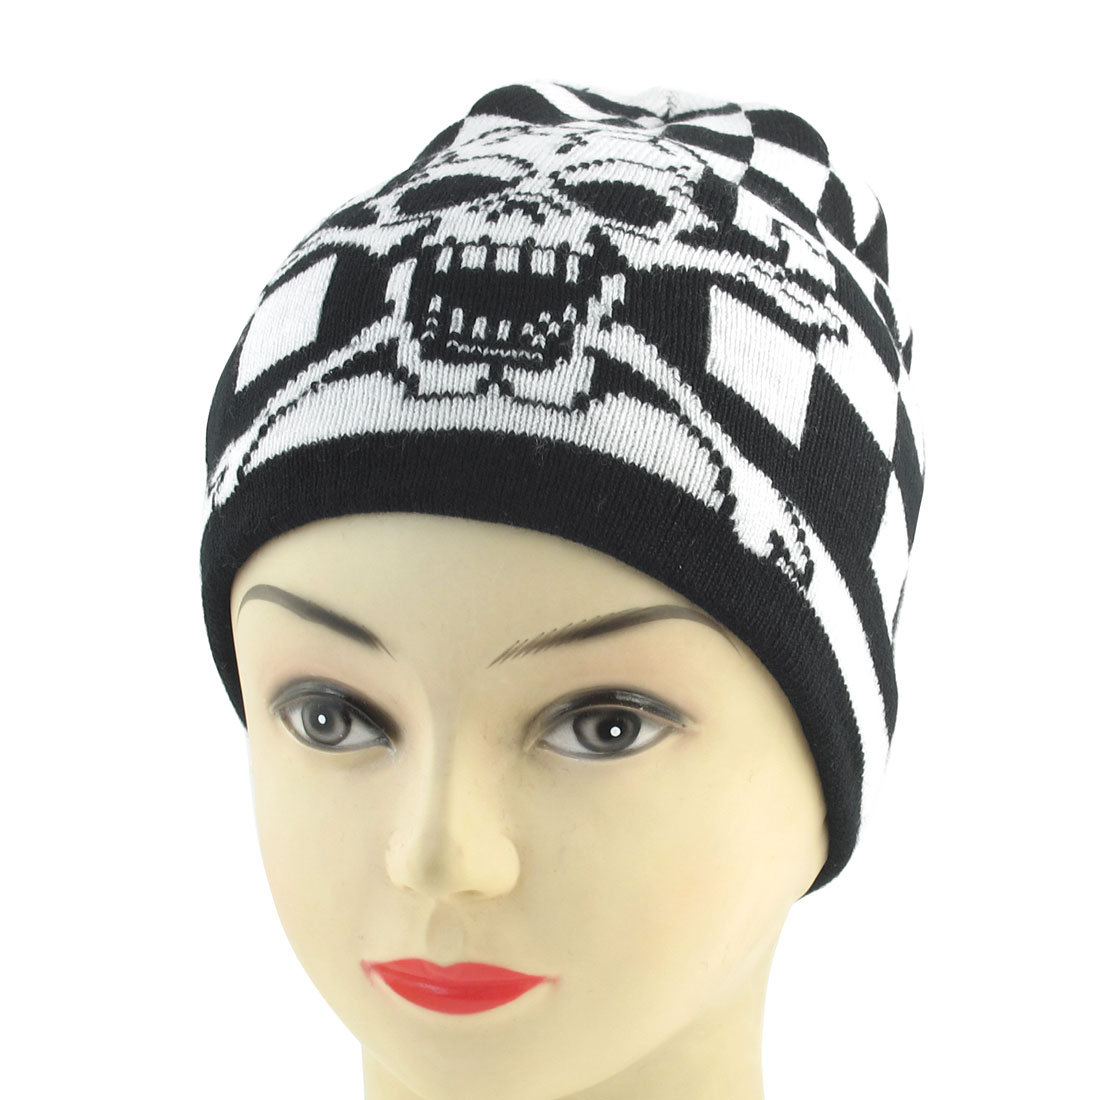 Unisex Black White Acrylic Knitted Snowboarding Sports Braided Ribbed Beanie Hat